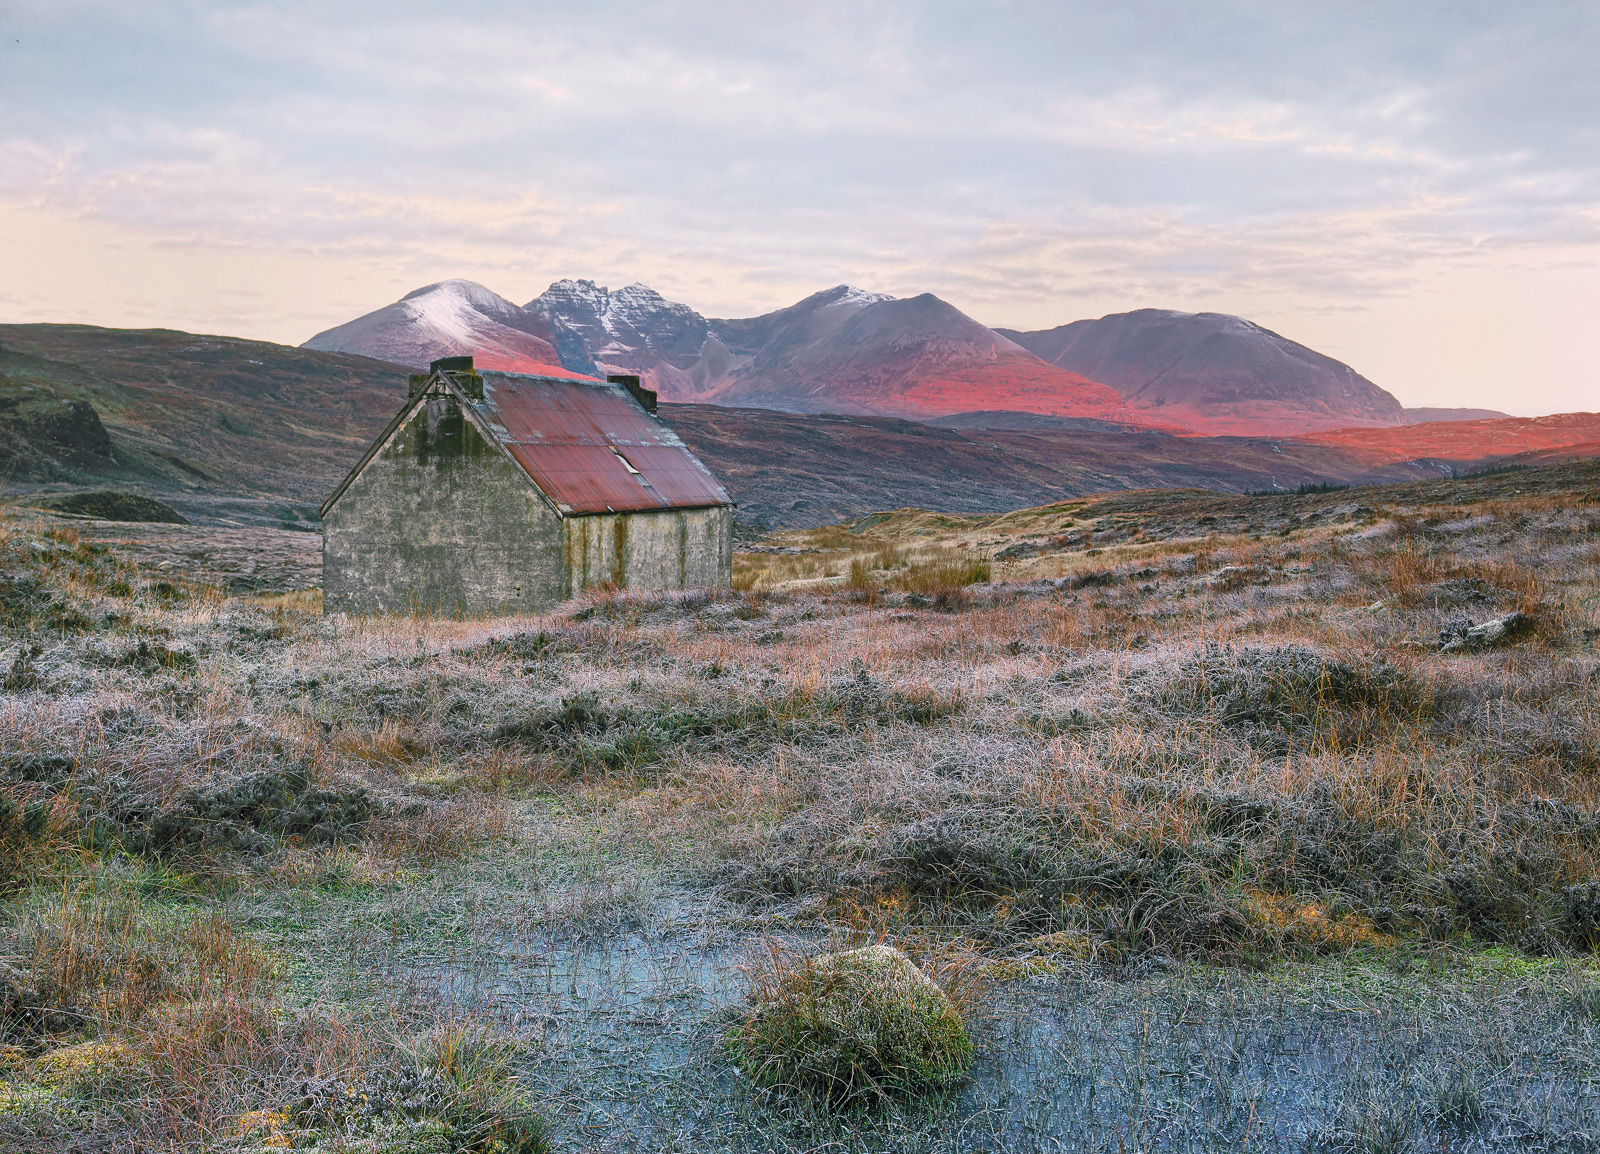 I gambled that it would be a frosty sunrise with the first light of morning striking the distant peaks of An Teallach and the...